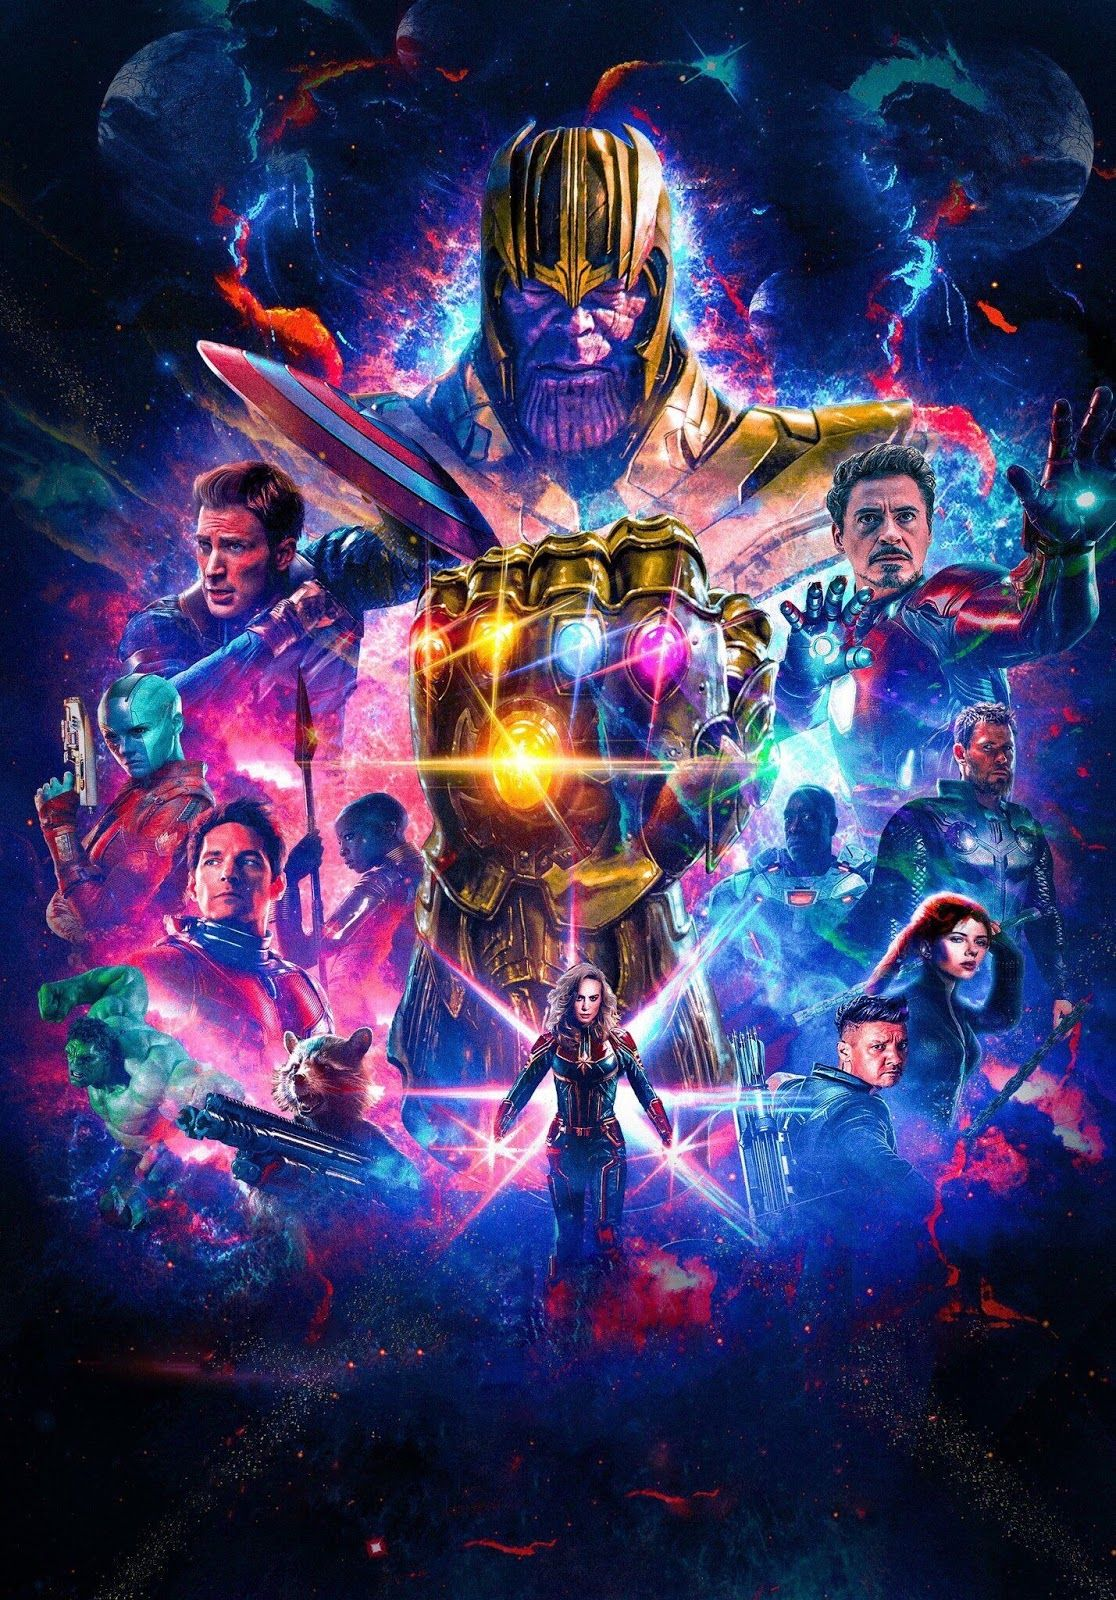 Avengers 4 End Game And Infinity War Hd Wallpapers Download In 4k